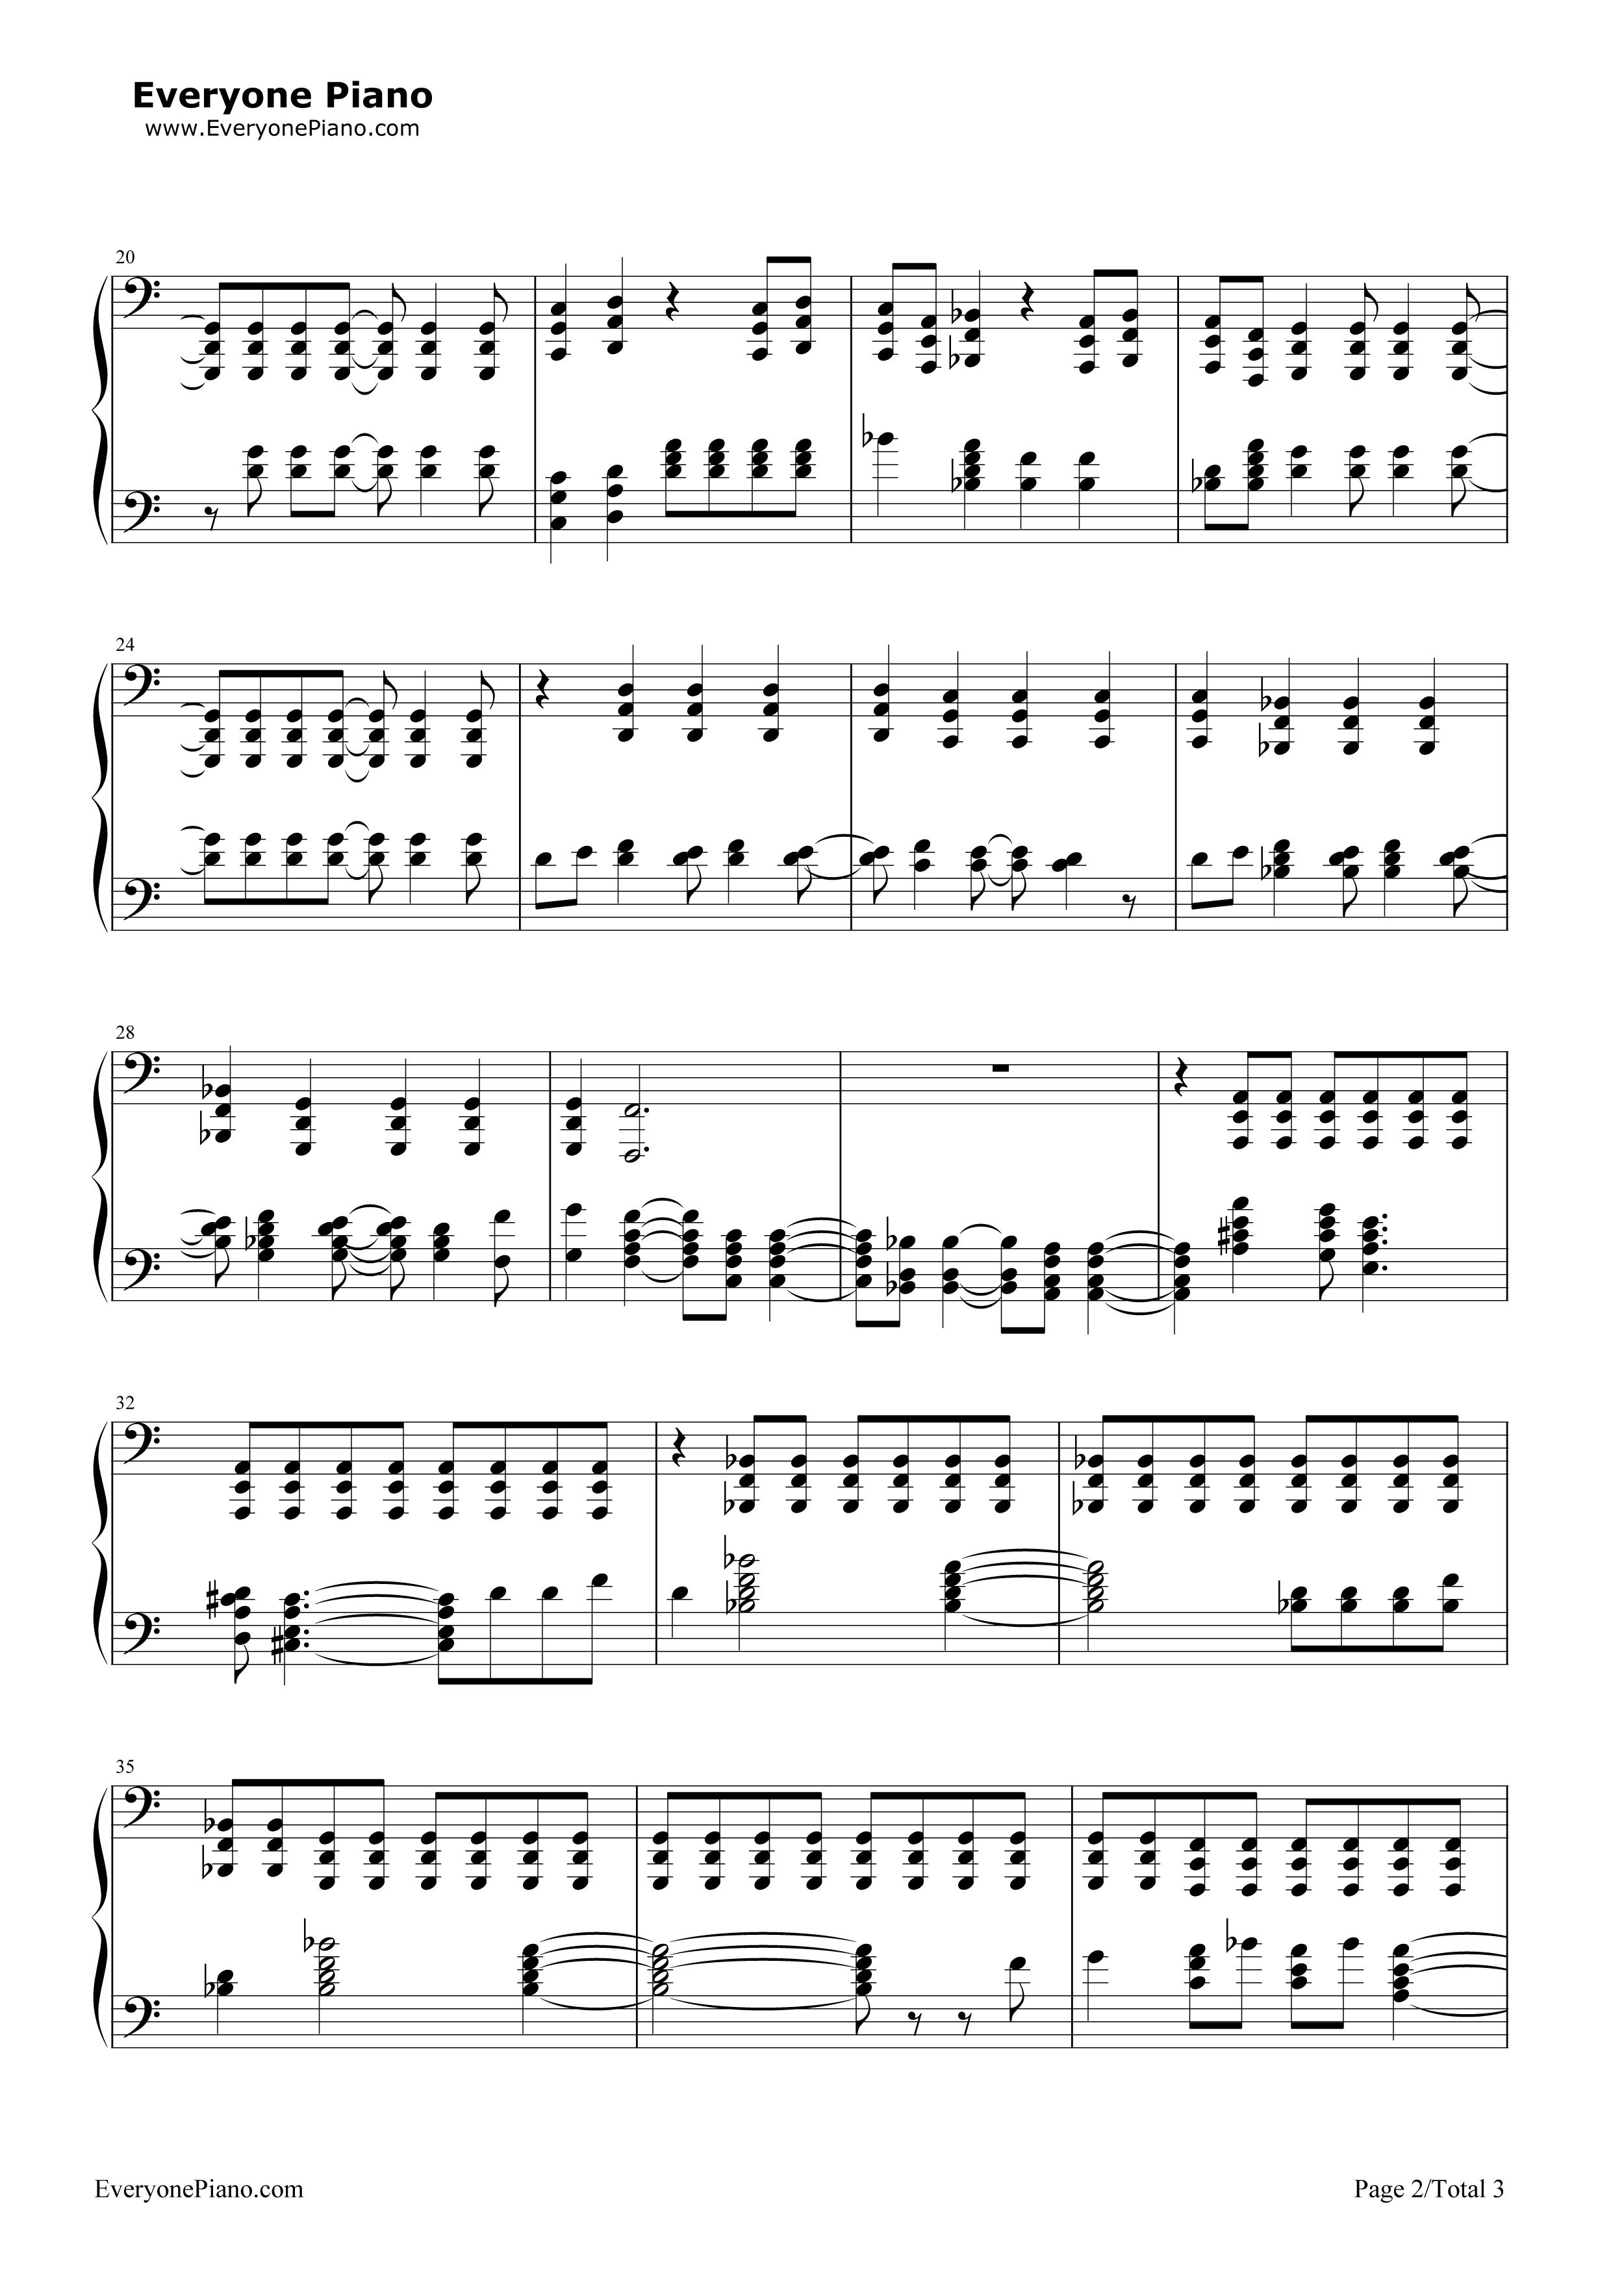 Locked Out Of Heaven-Bruno Mars Stave Preview 2-Free Piano Sheet Music u0026 Piano Chords